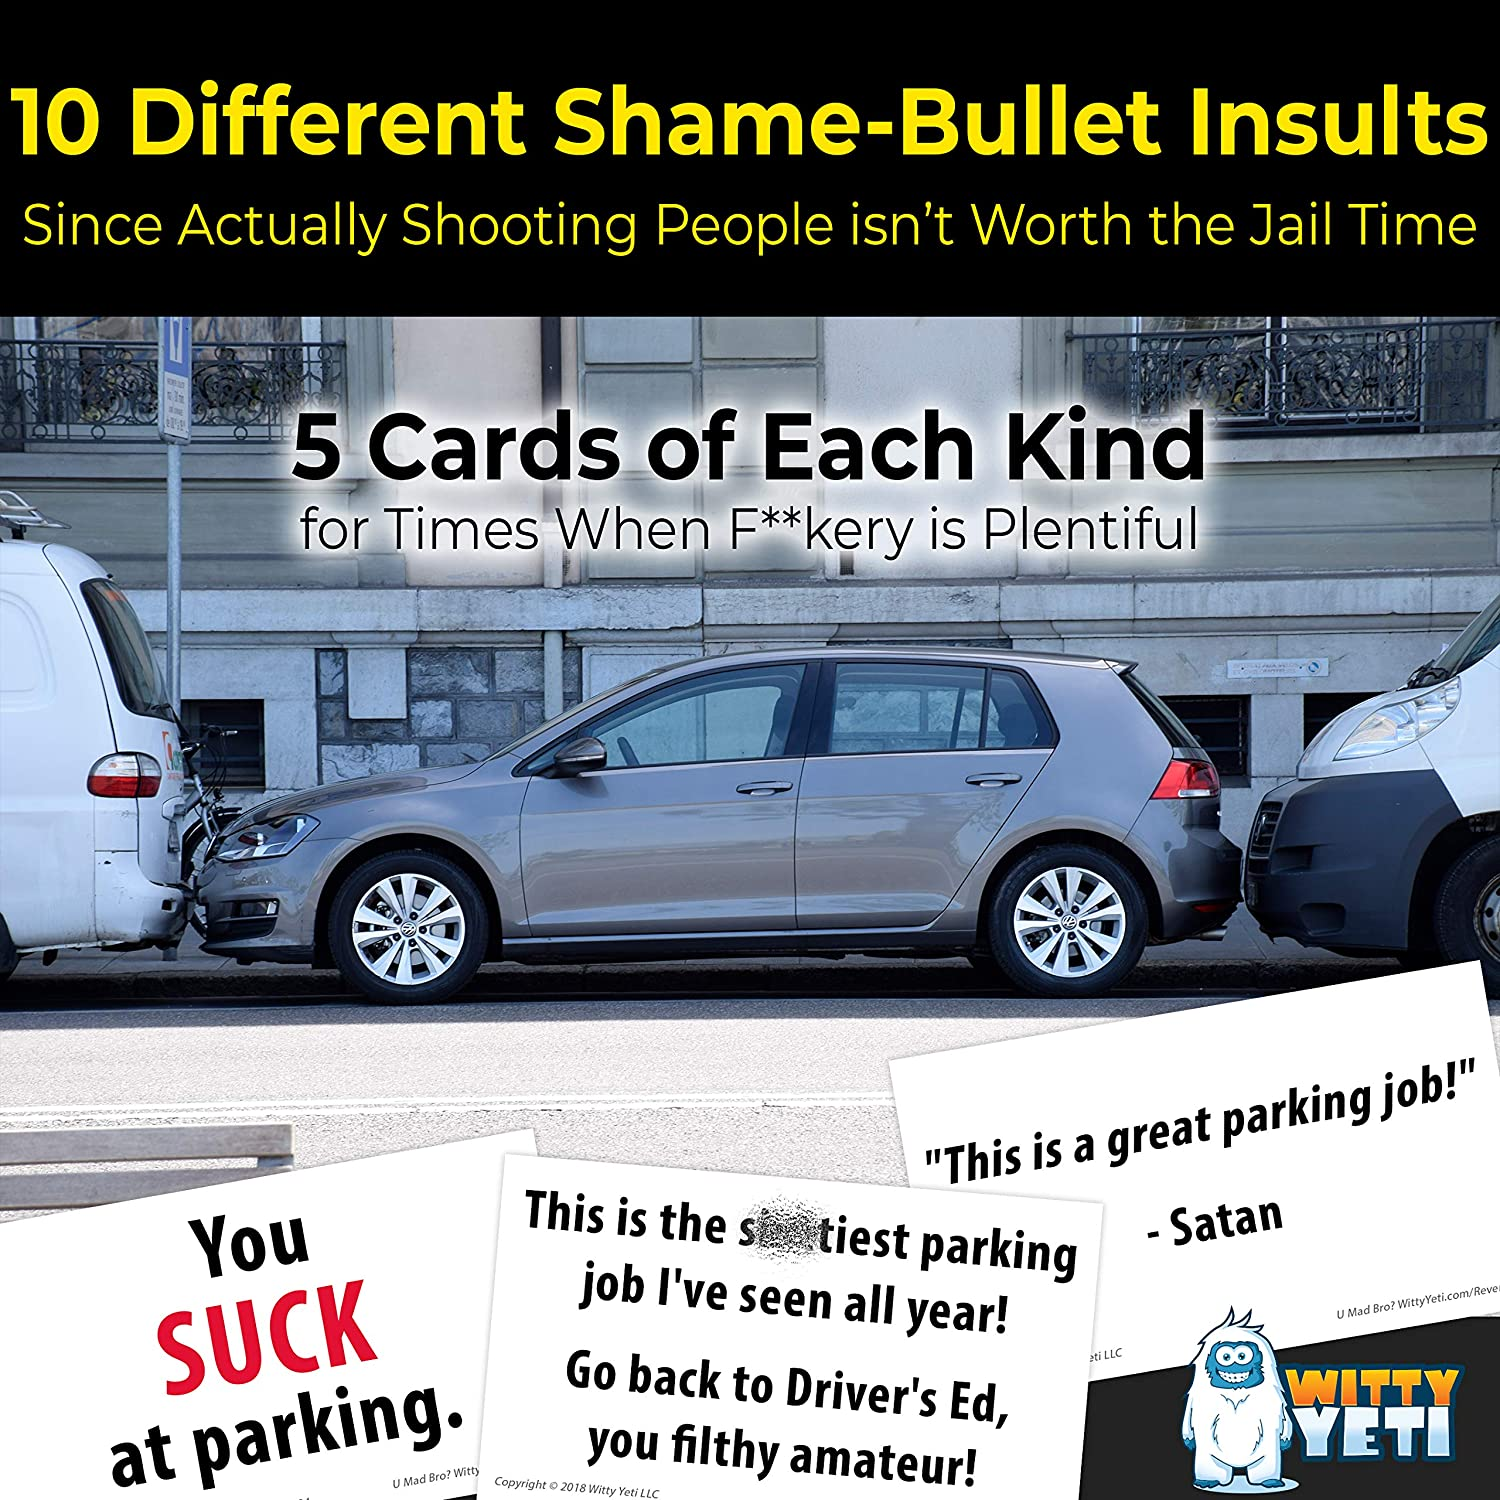 Amazon.com: Witty Yeti Hilarious Bad Parking Cards Street Justice Edition  50 Pk 5X 10 Designs Perfect for Shaming Drivers. Funny Road Rage Revenge,  ...